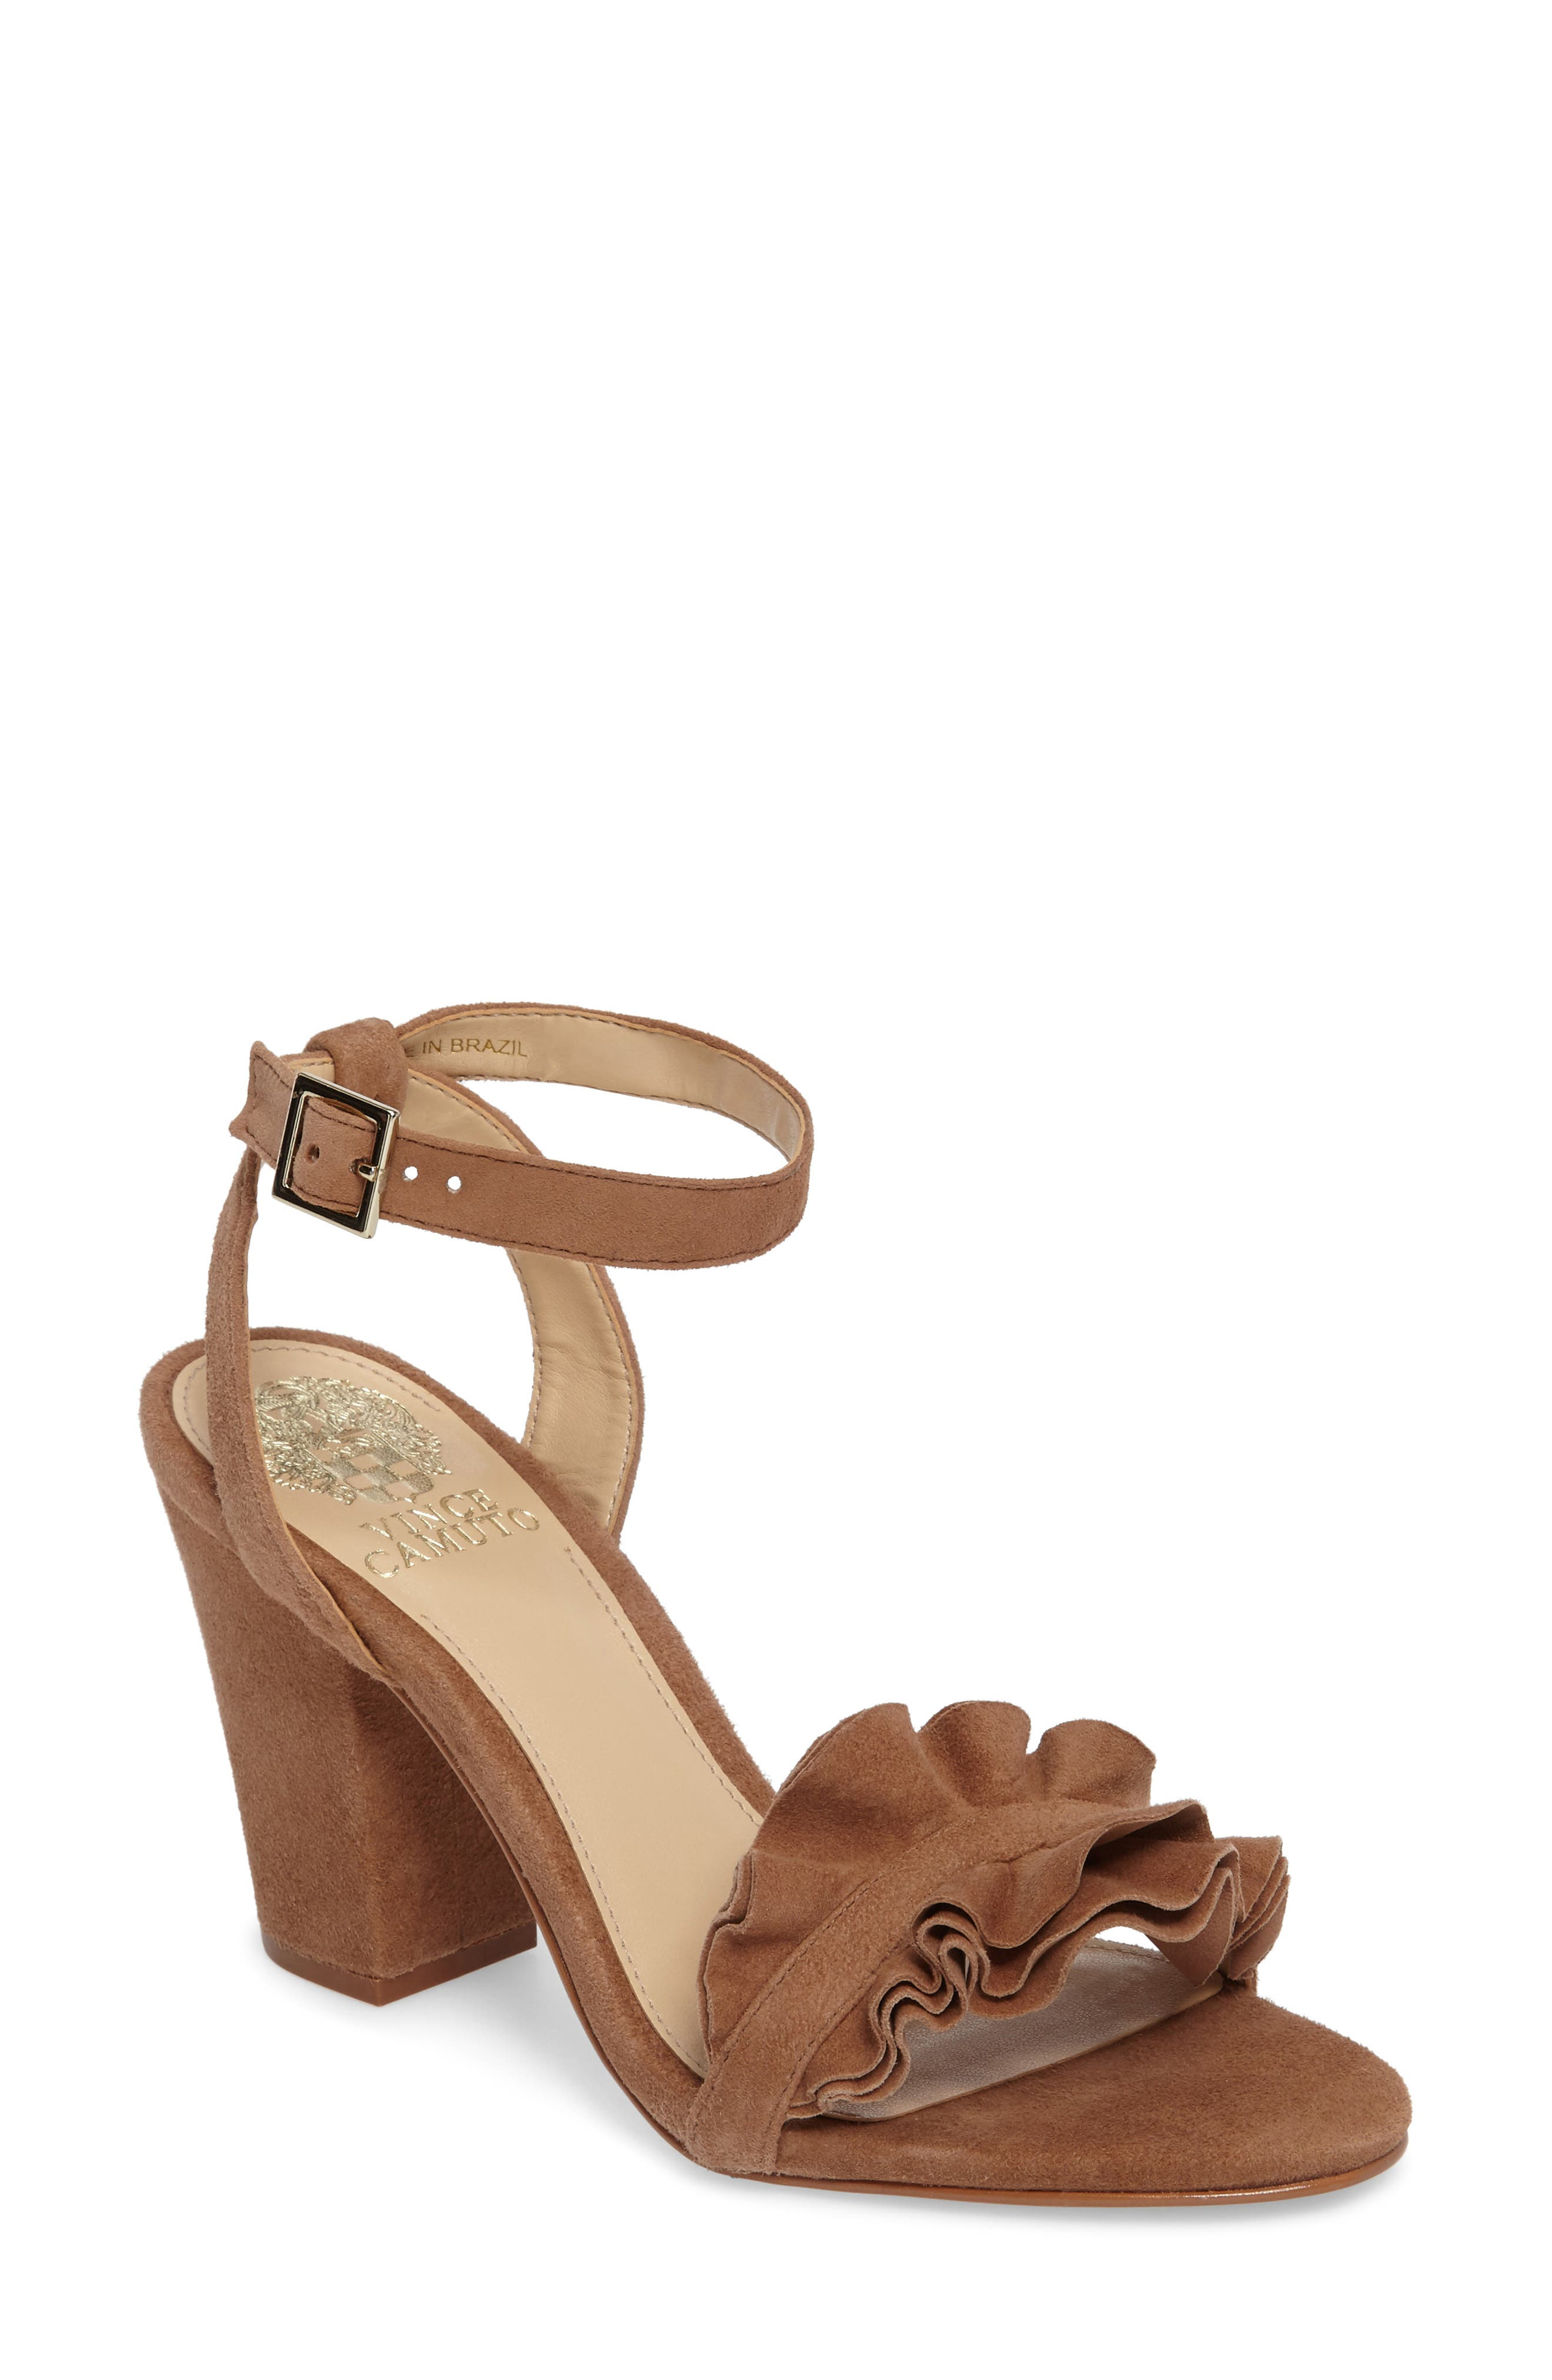 Vinta Sandal,                             Alternate thumbnail 4, color,                             Amendoa Suede